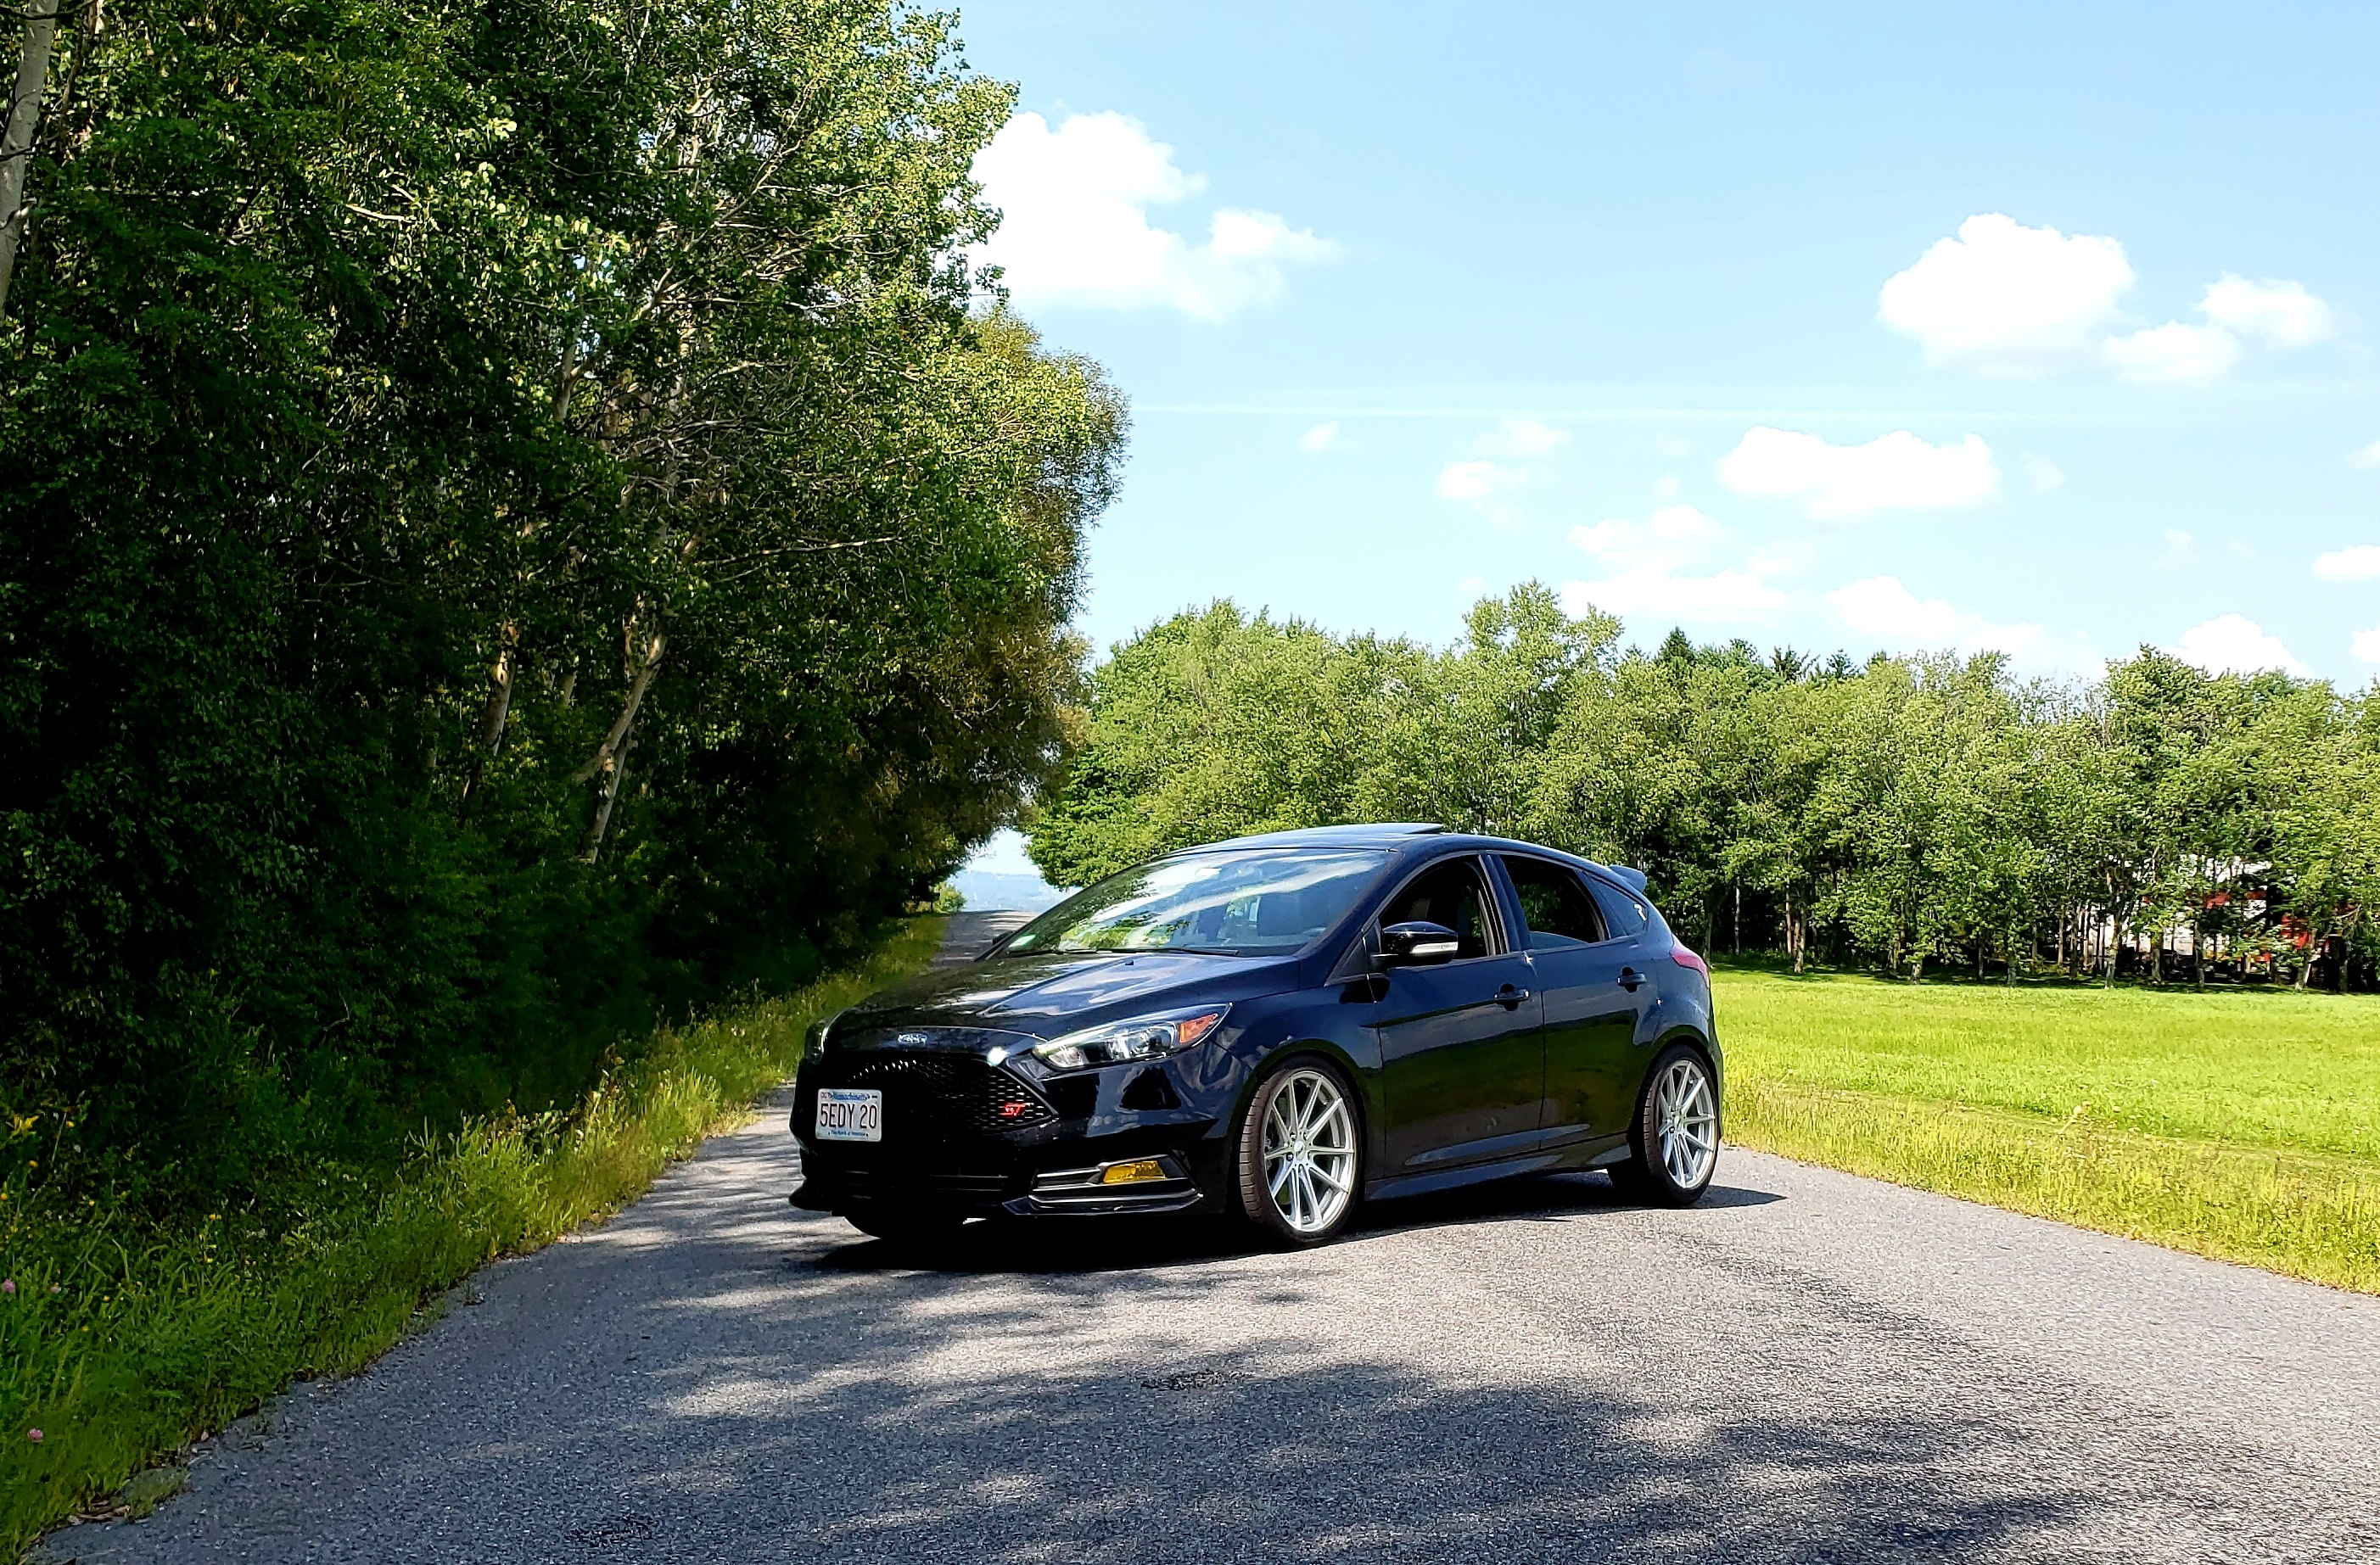 Name:  12.1. Coilovers, plate relocate.jpg Views: 135 Size:  2.41 MB